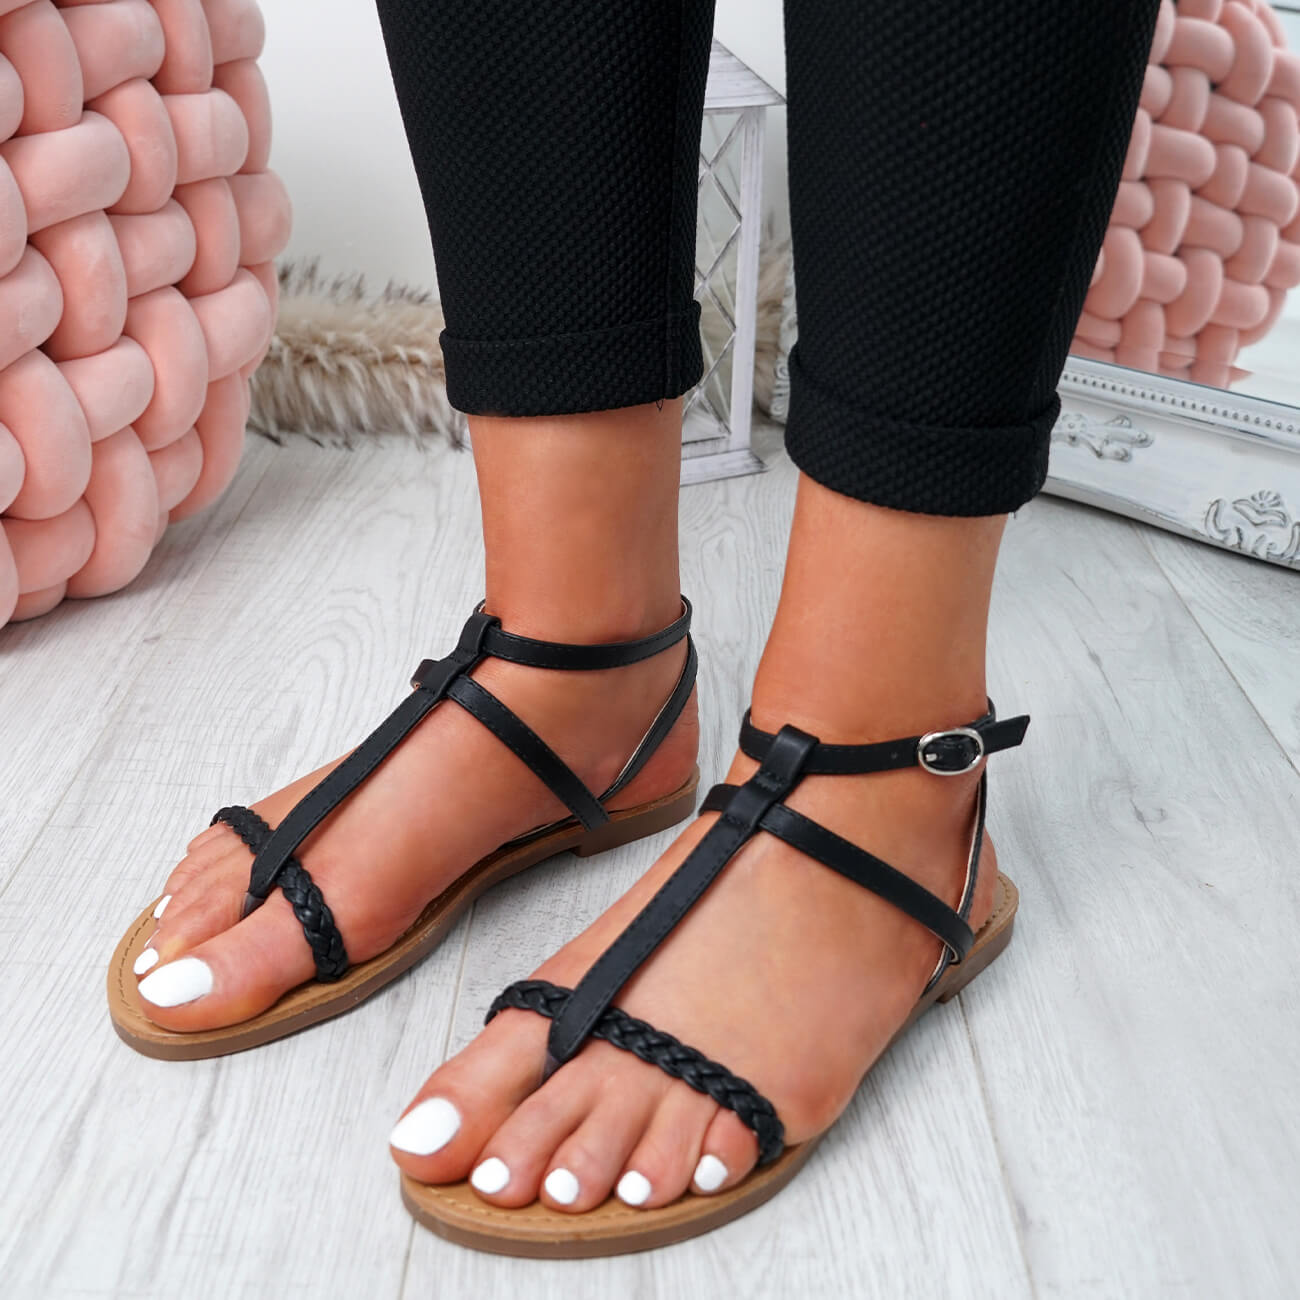 WOMENS-LADIES-T-STRAP-FLAT-SANDALS-BUCKLE-CASUAL-SUMMER-SHOES-SIZE-UK thumbnail 8